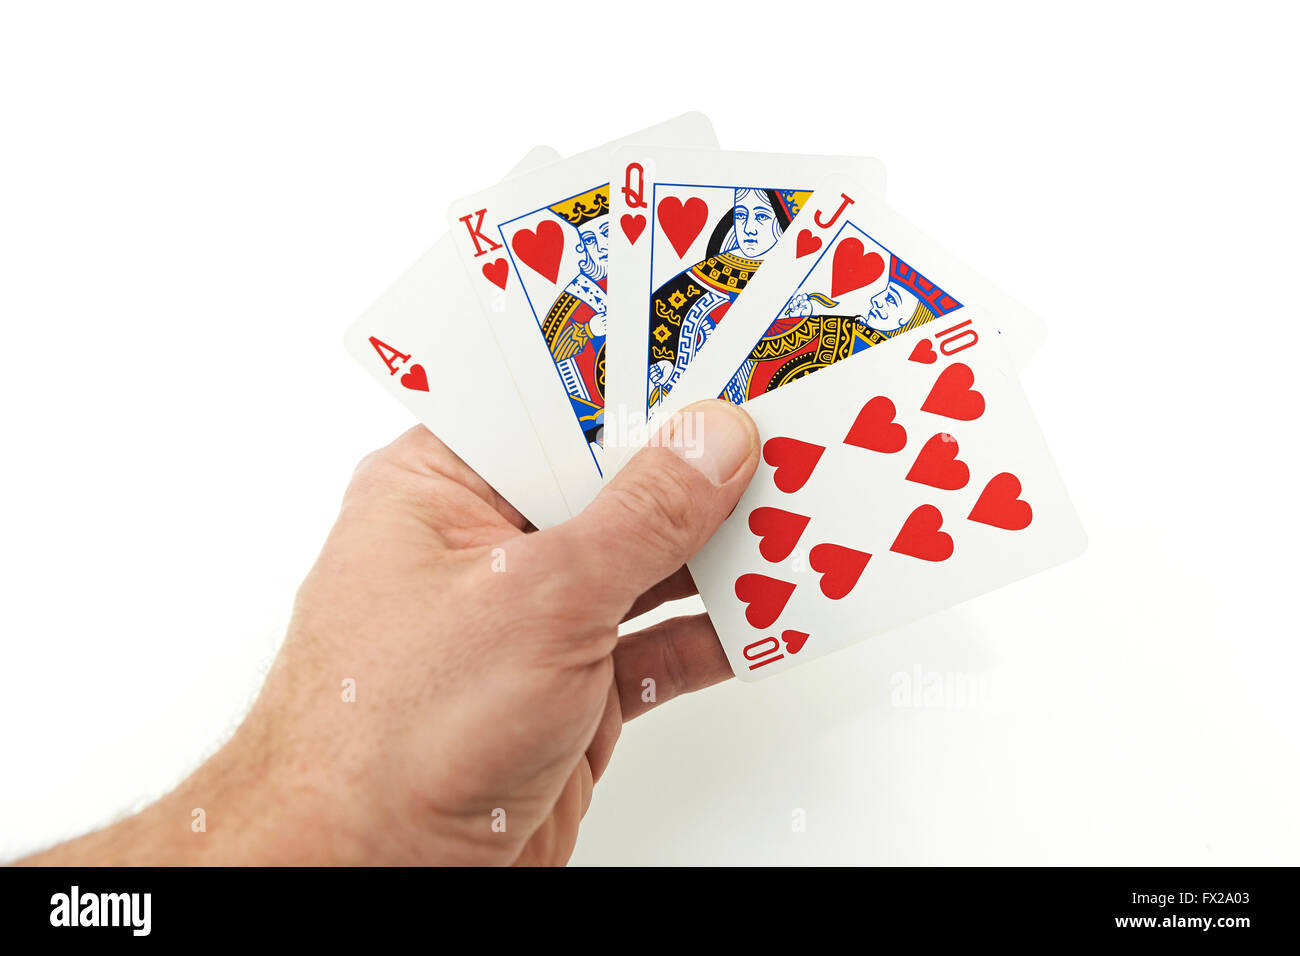 The hand of a Poker player holding royal flush - Stock Image